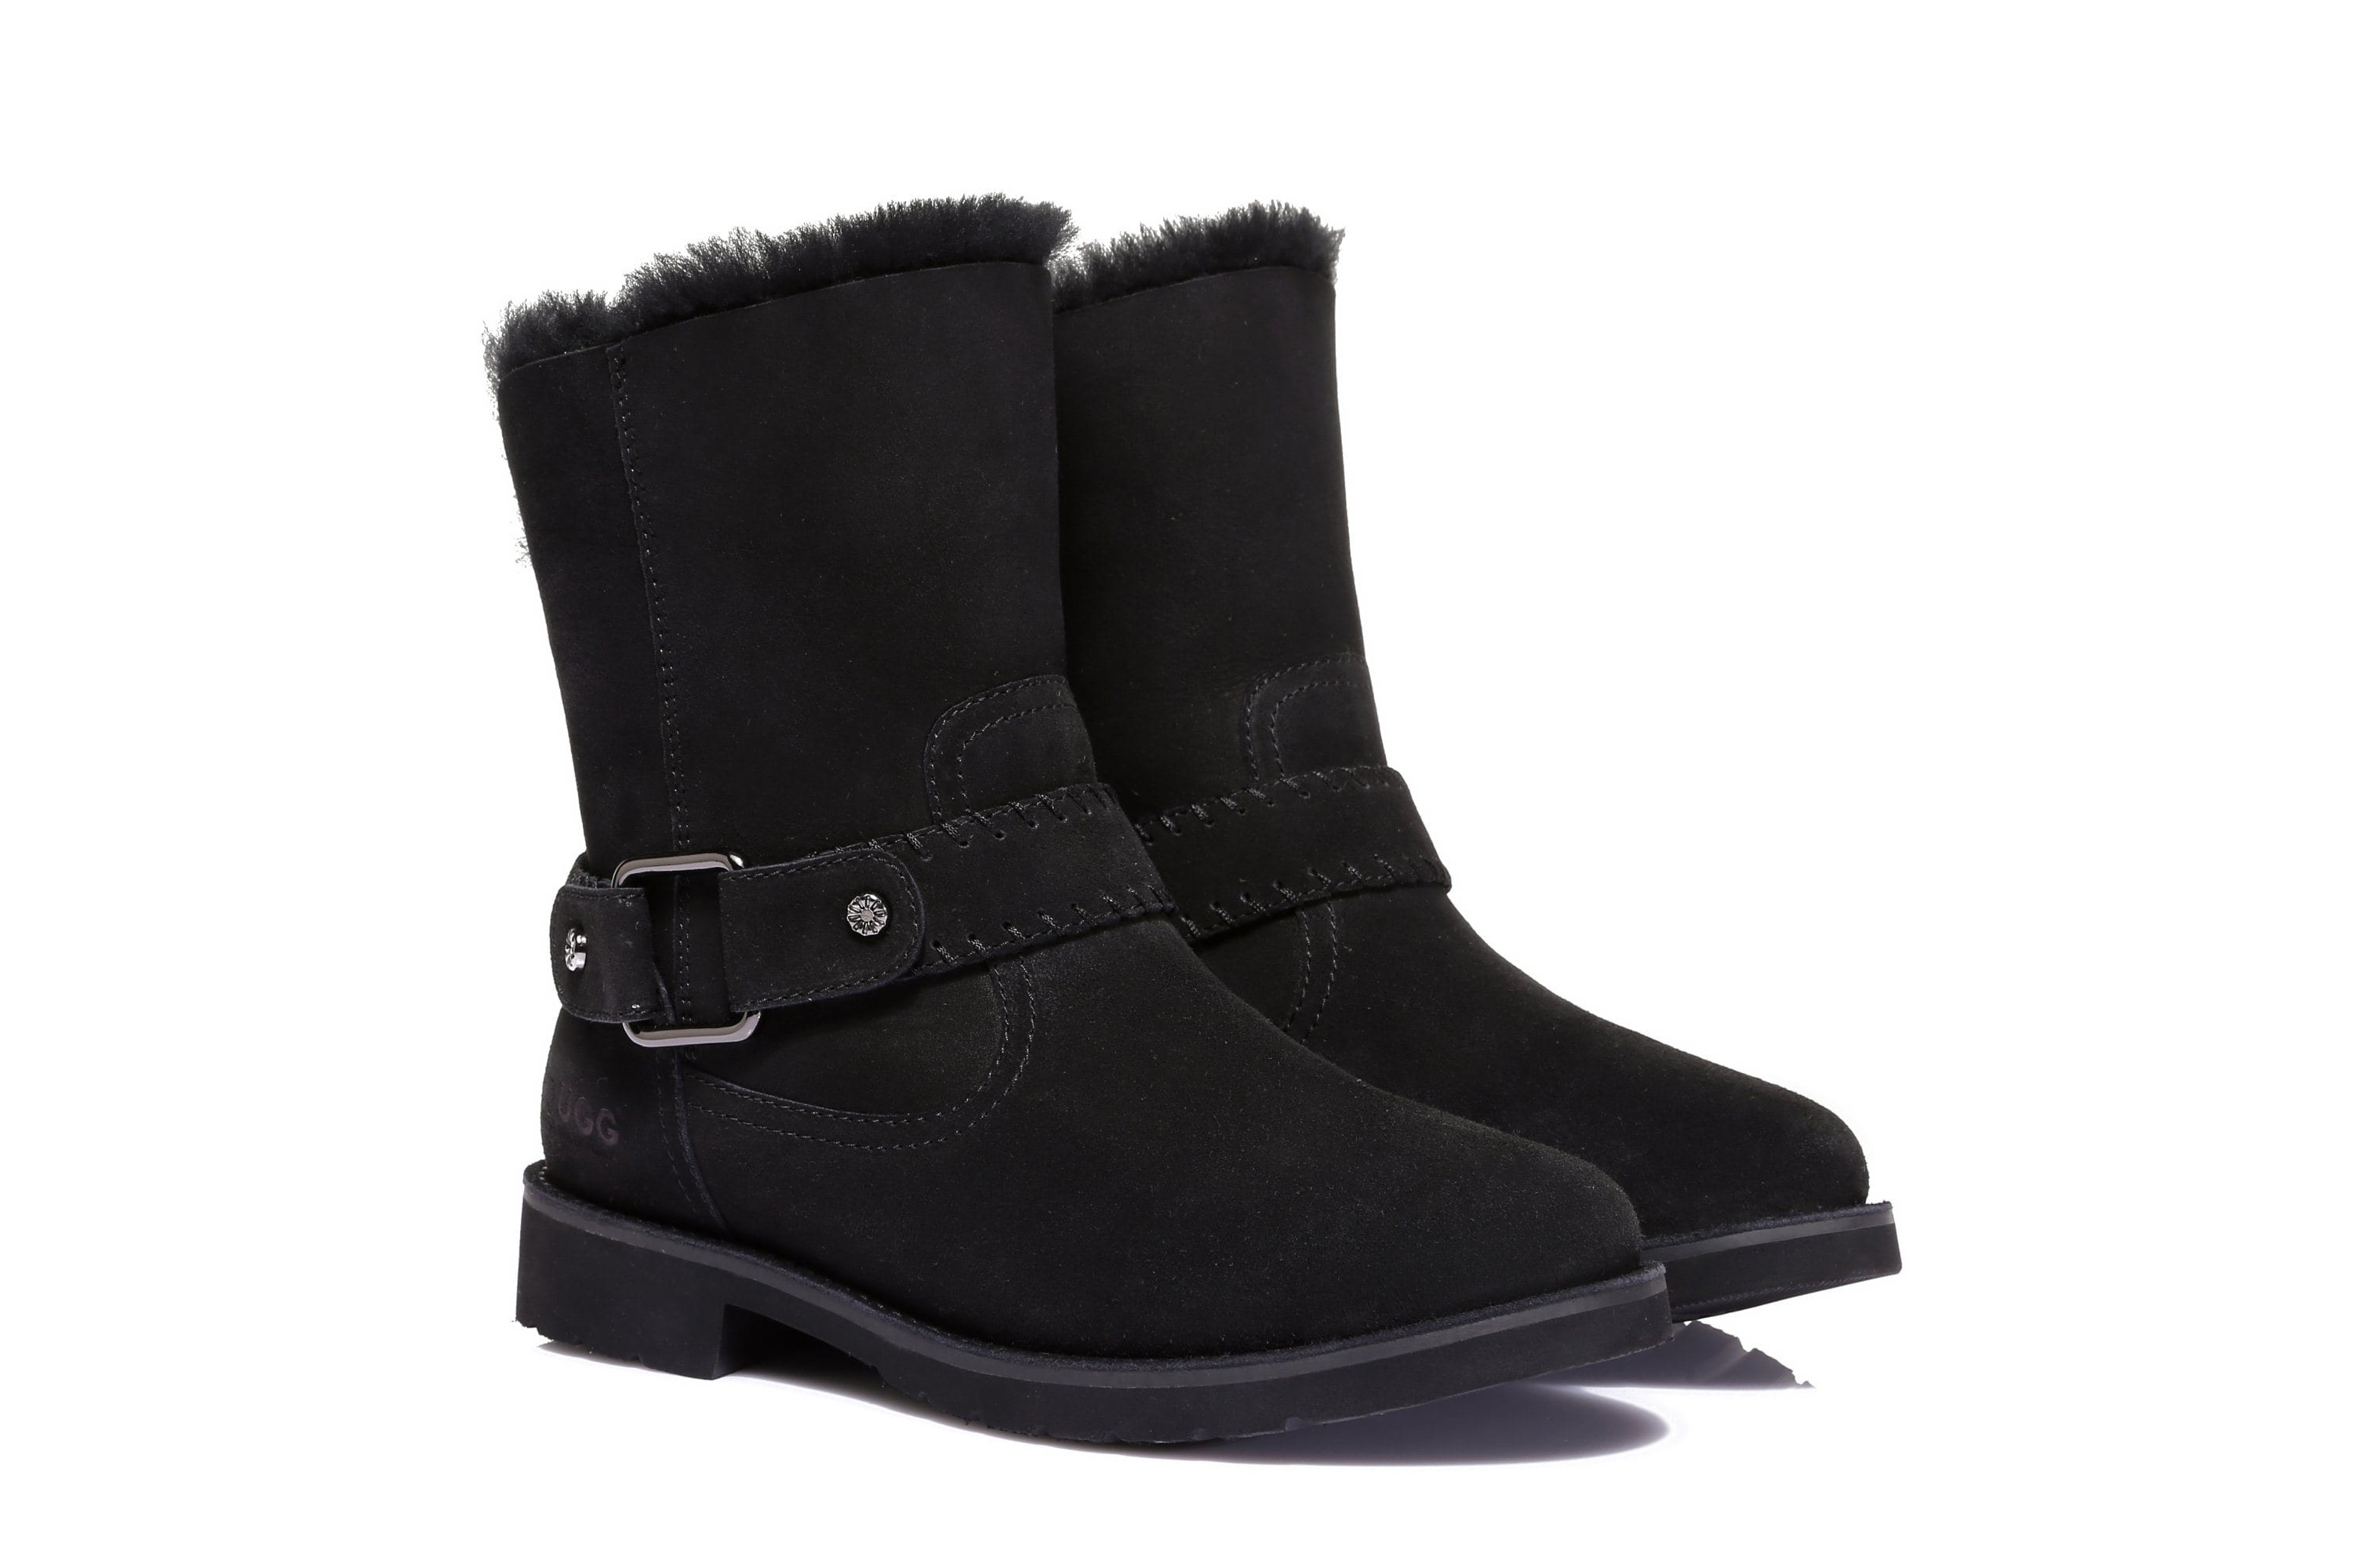 Ever UGG Ladies Fashion Boots Sarah #11885